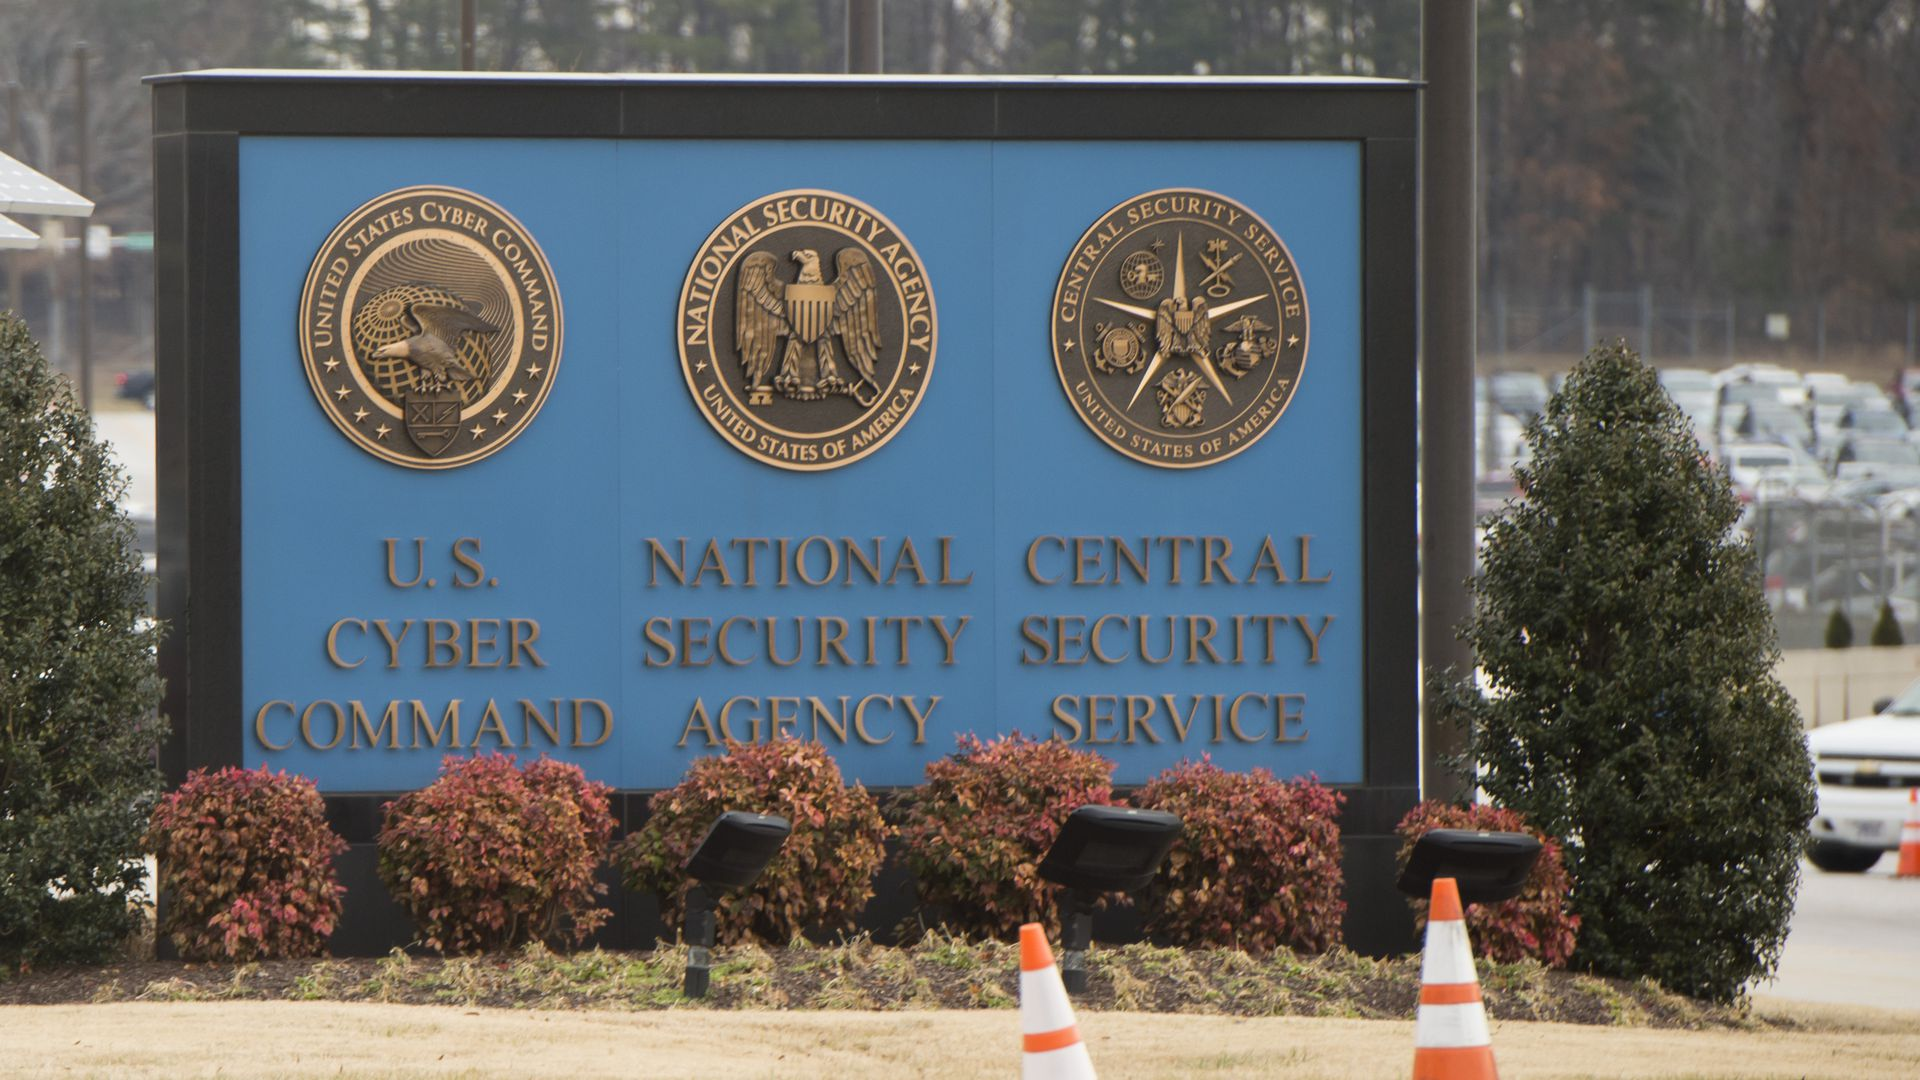 The National Security Agency headquarters in Fort Meade, Maryland. Photo: Saul Loeb/AFP/Getty Images